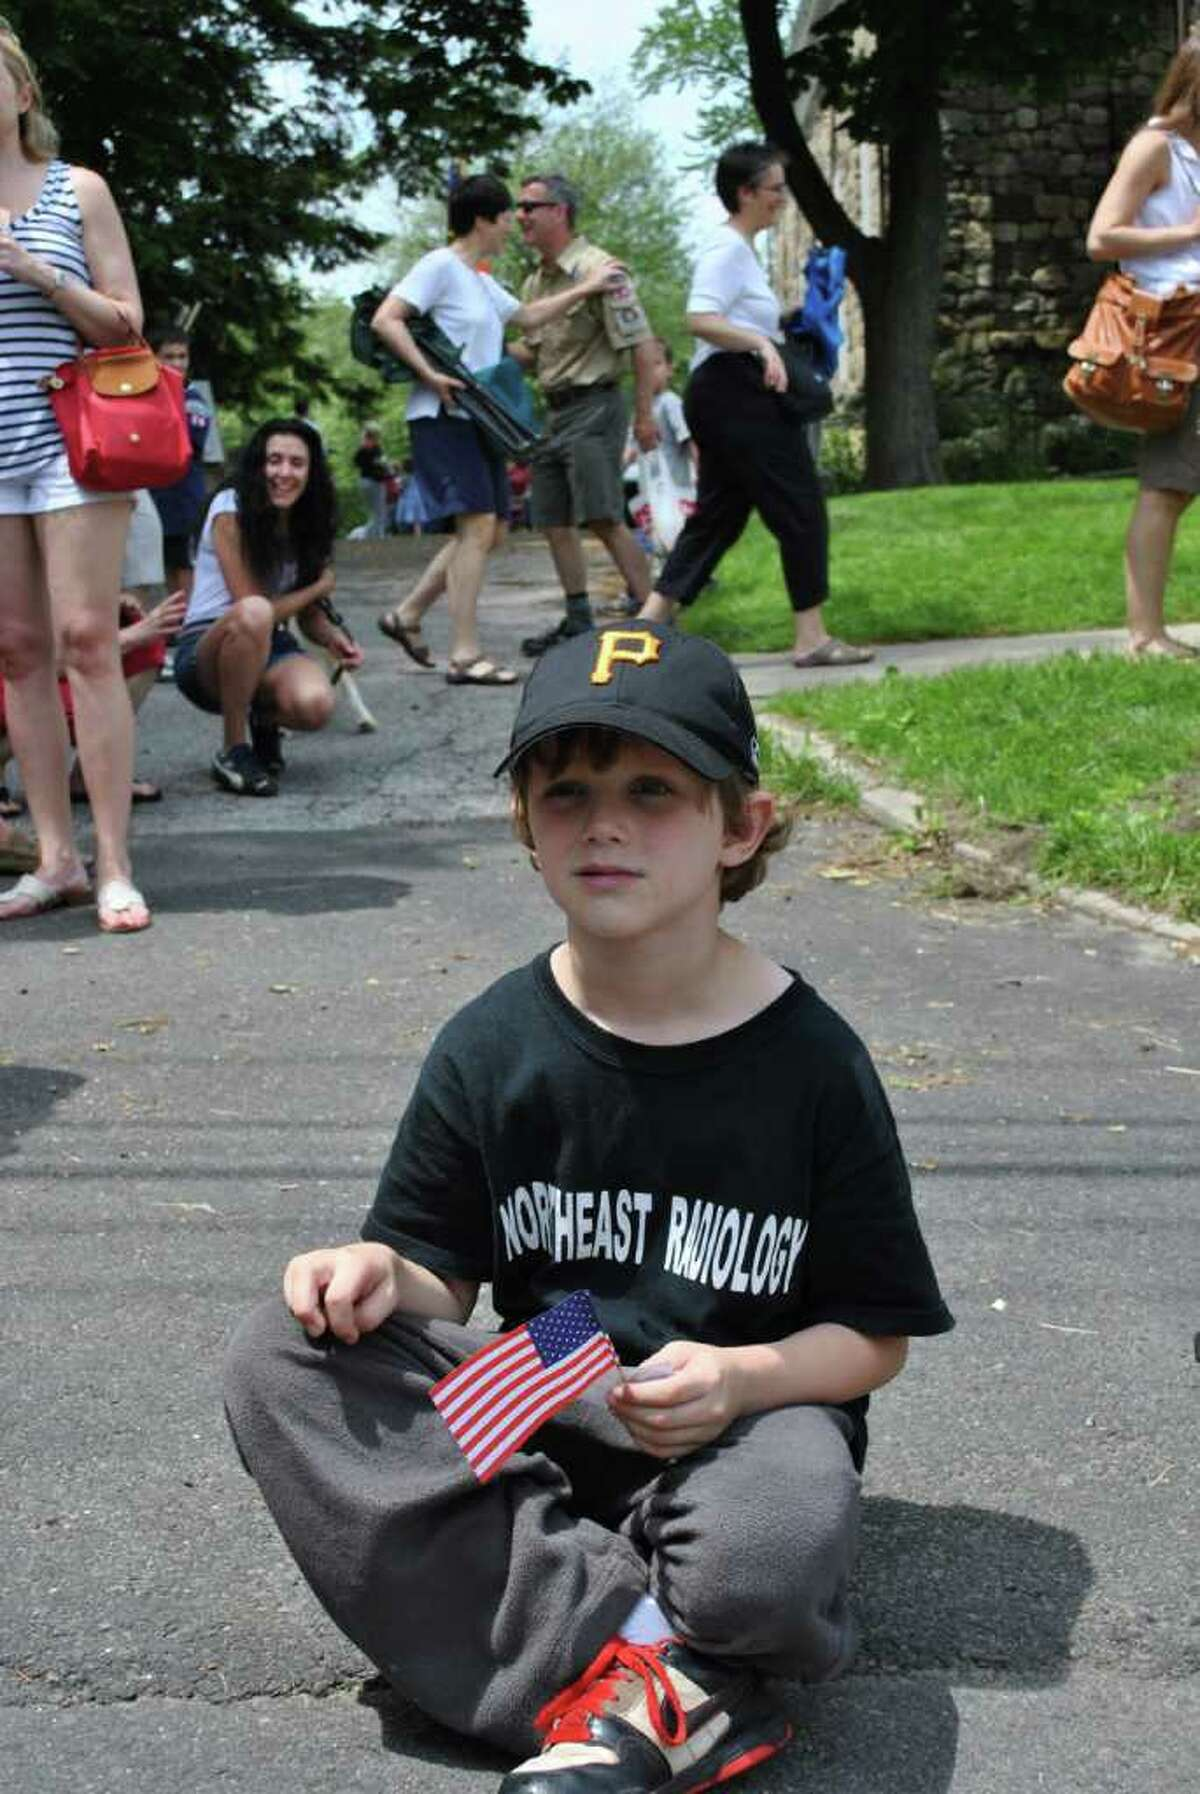 Ridgefield had their Memorial Day parade on May 30, 2011.